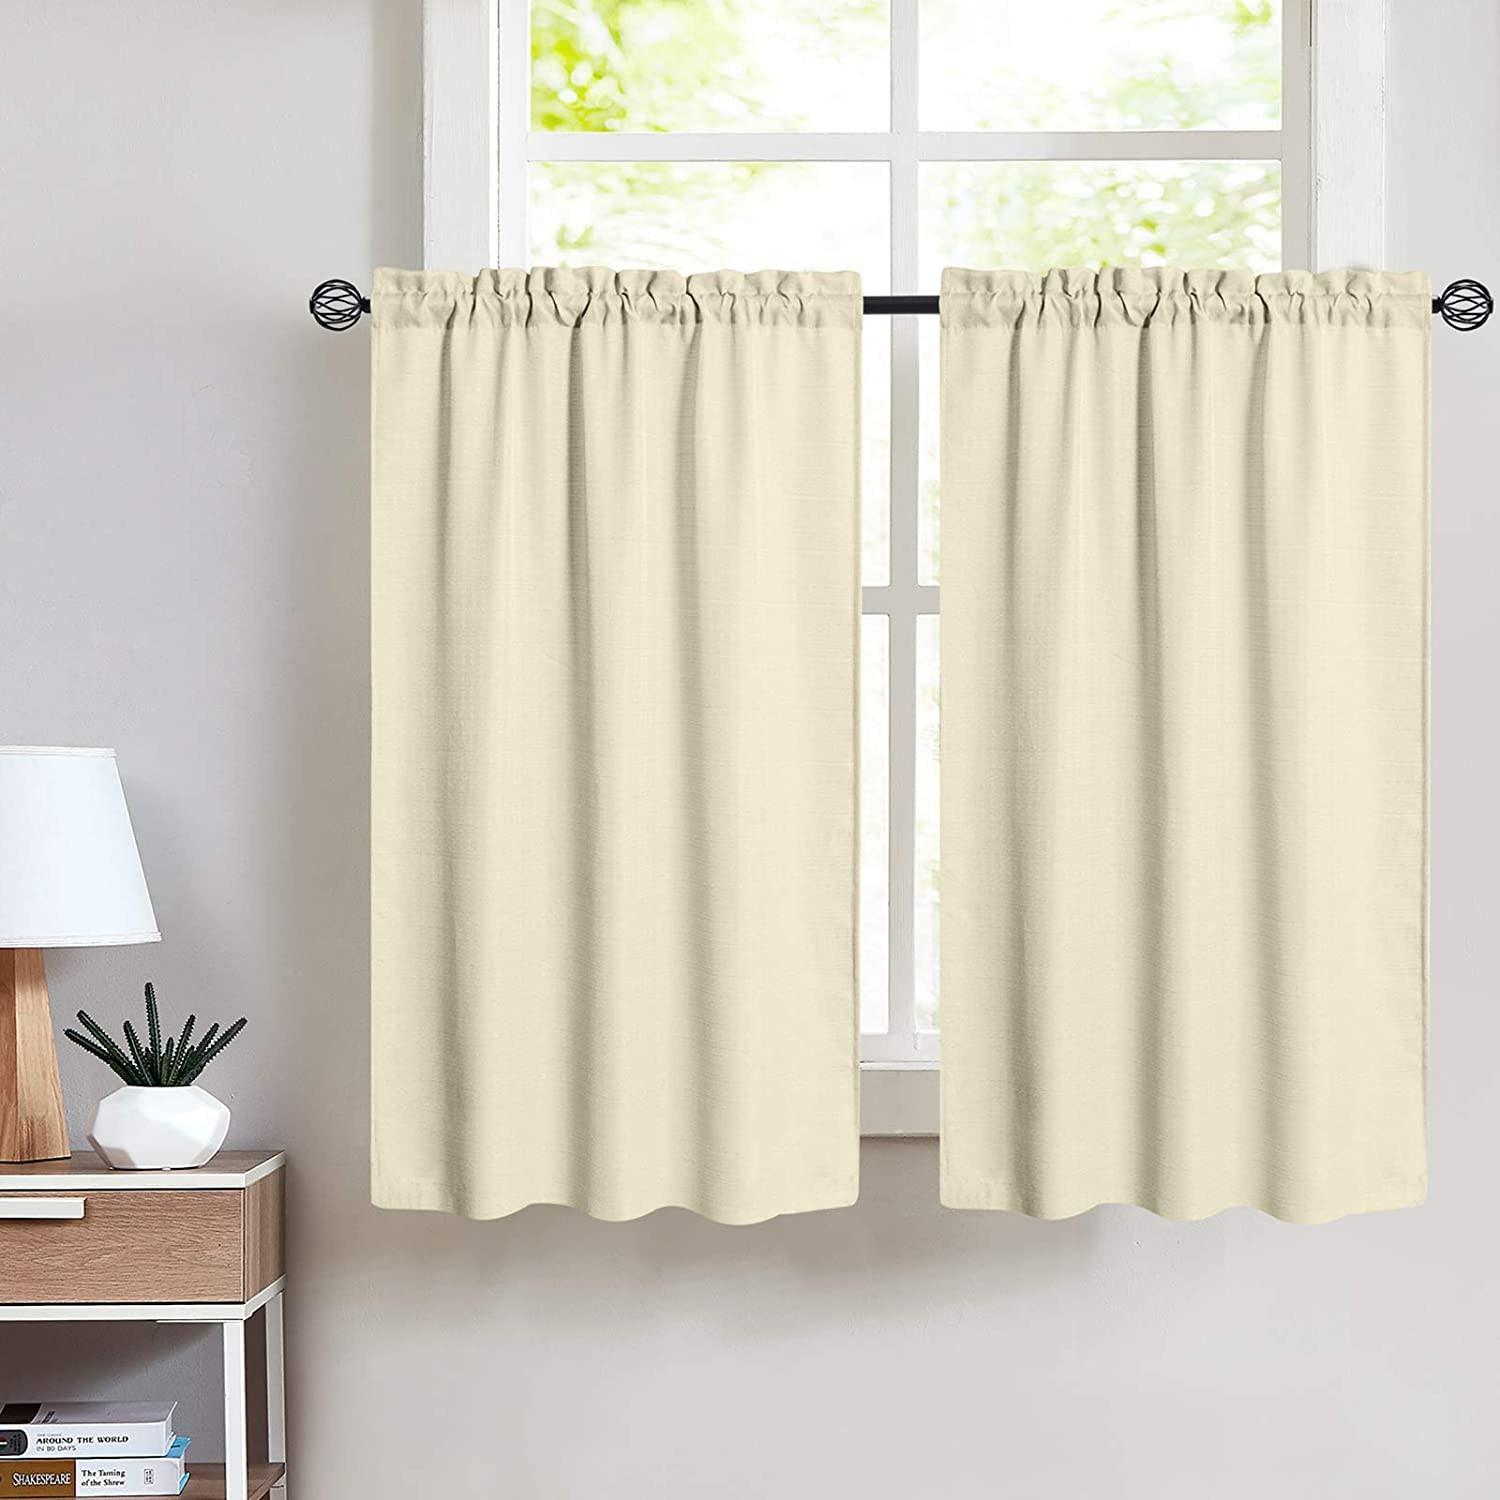 Tier Curtains 36 inch Rod Pocket for Kitchen Casual Weave Textured Cafe Curtain Semi Sheer Short Curtain for Bathroom Half Window, 2 Panels, W68xL36|Set,Beige